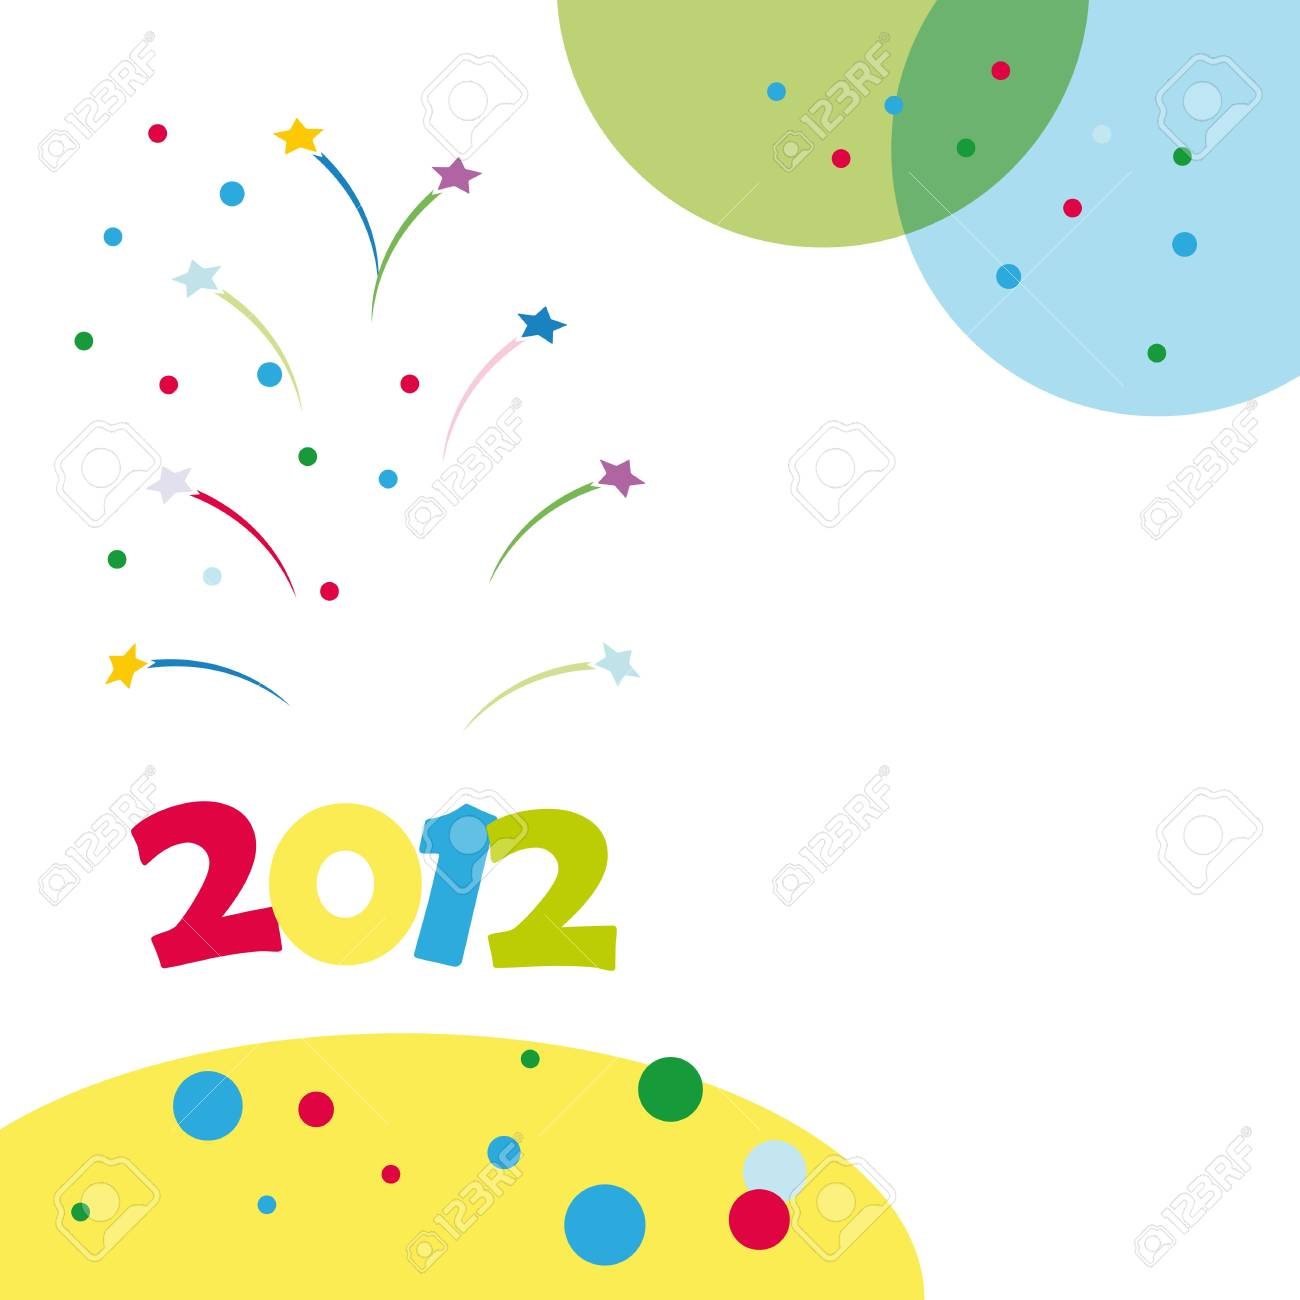 Colorful background on New Year 2012 Stock Vector - 10697794